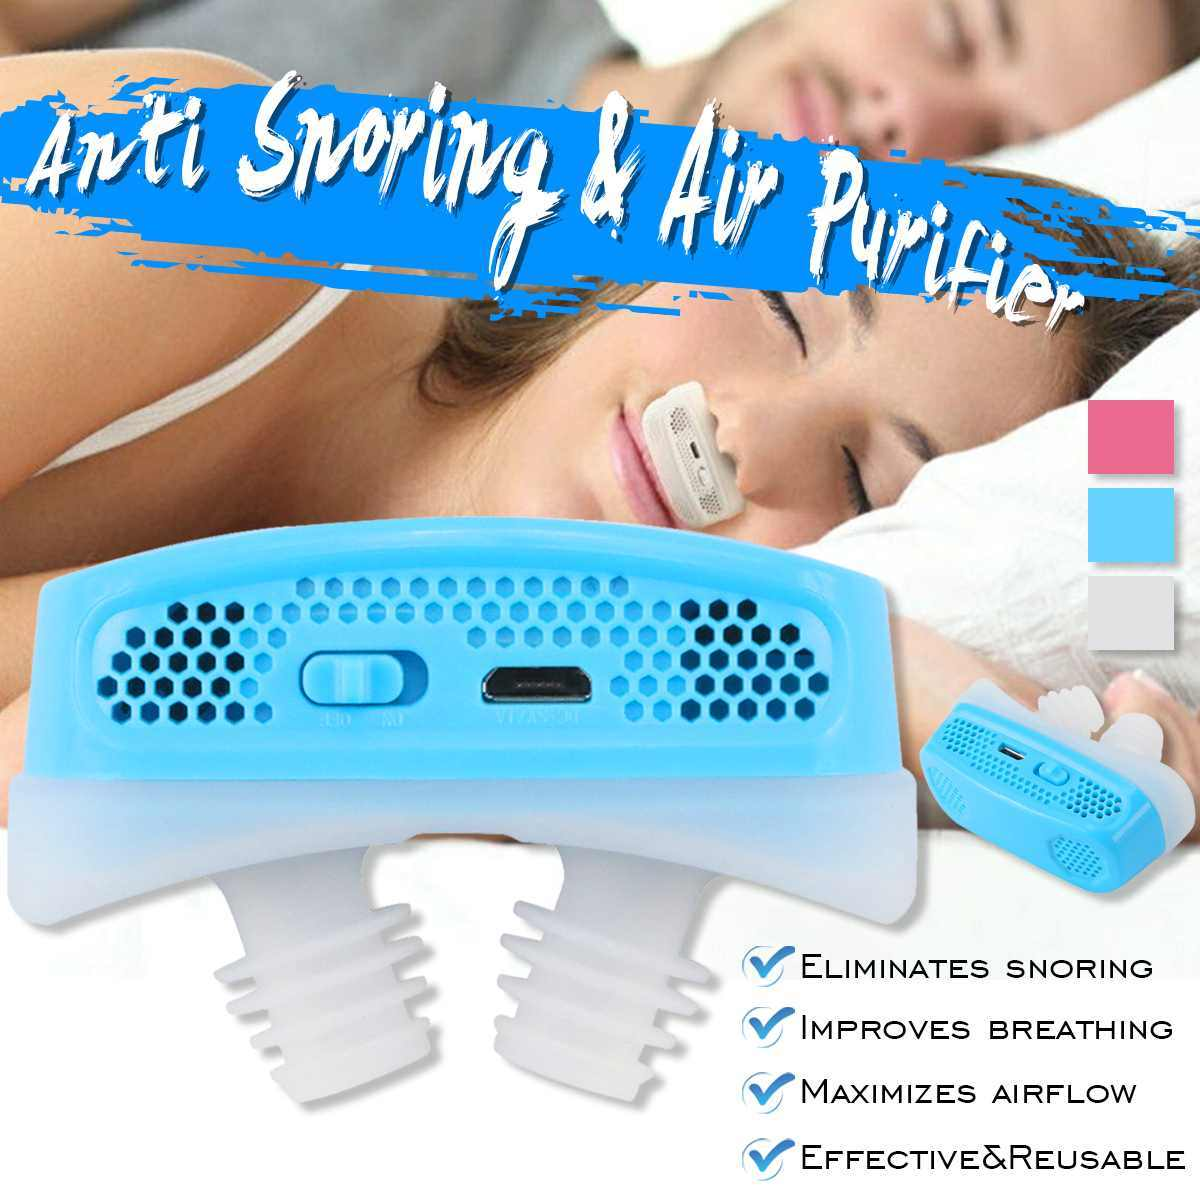 New Mini CPAP Nose Machine Silicone Anti Snoring Electronic Nose Breathing Apparatus Nasal Dilators Apnea Aid Device